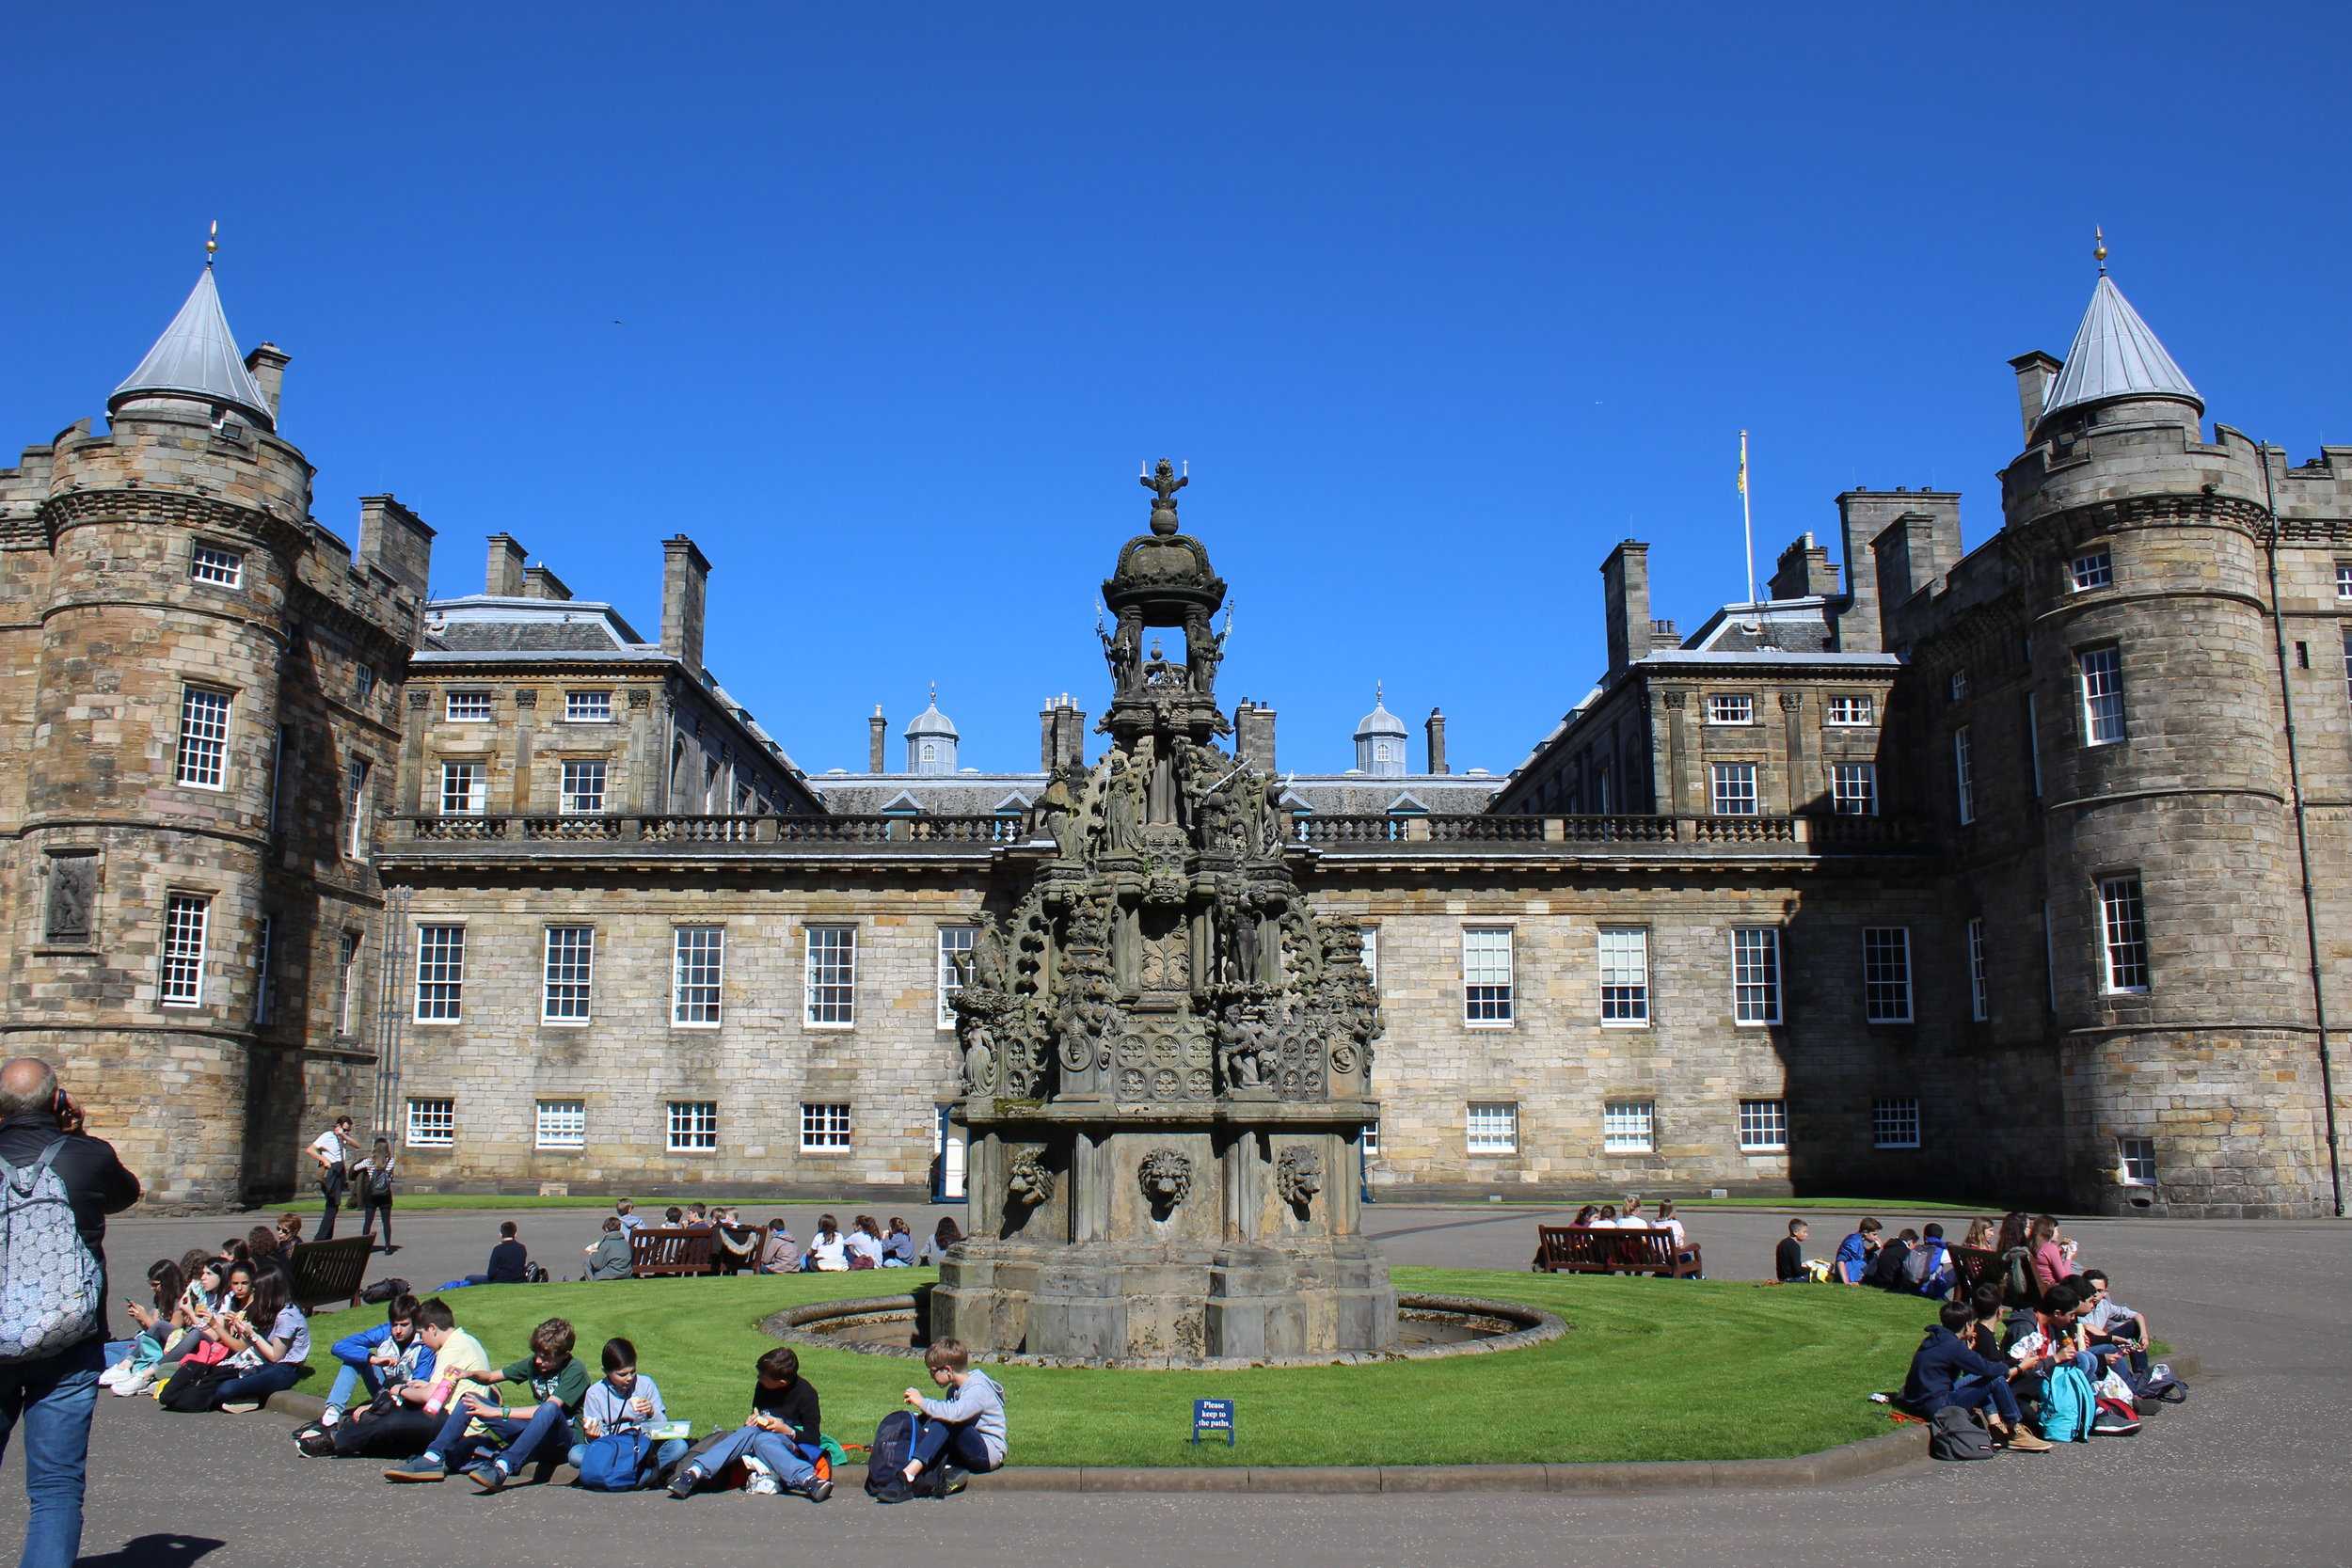 The facade of Holyroodhouse Palace